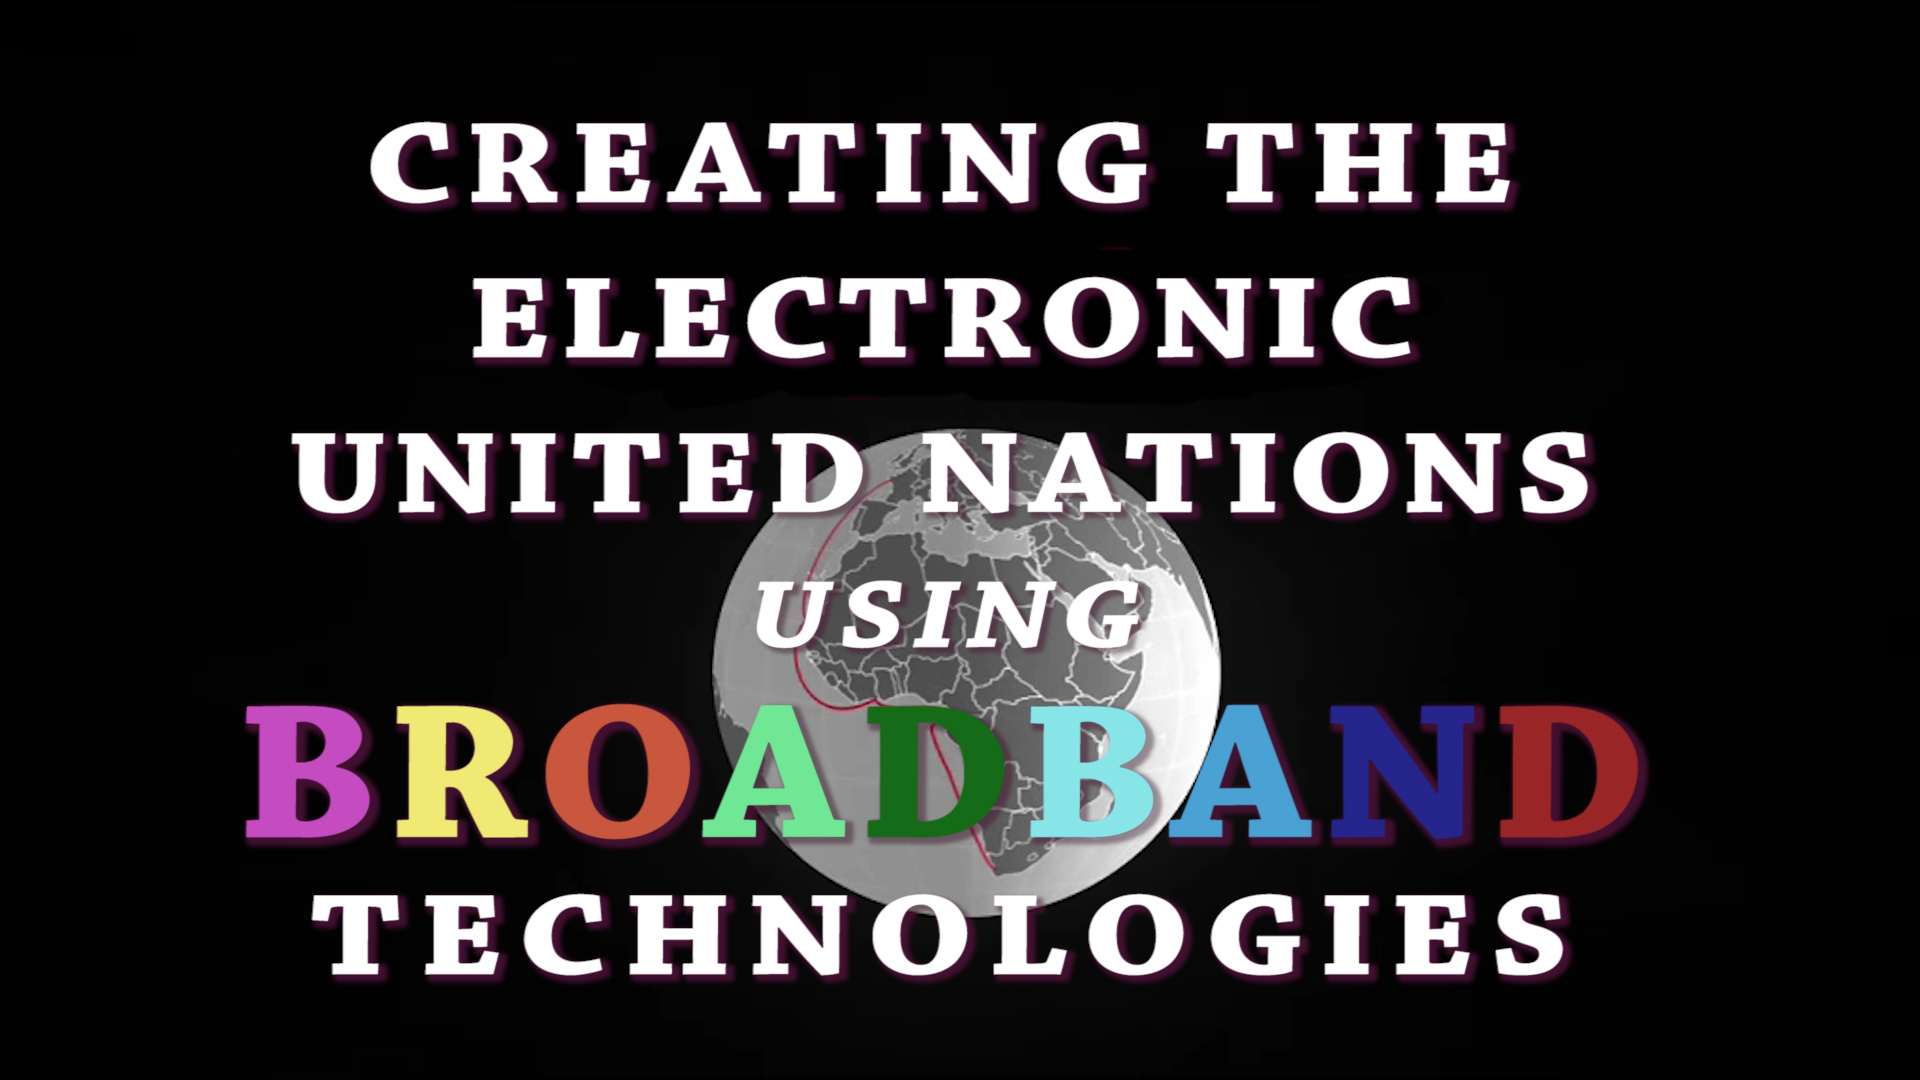 Creating the Electronic United Nations Using Broadband Technologies